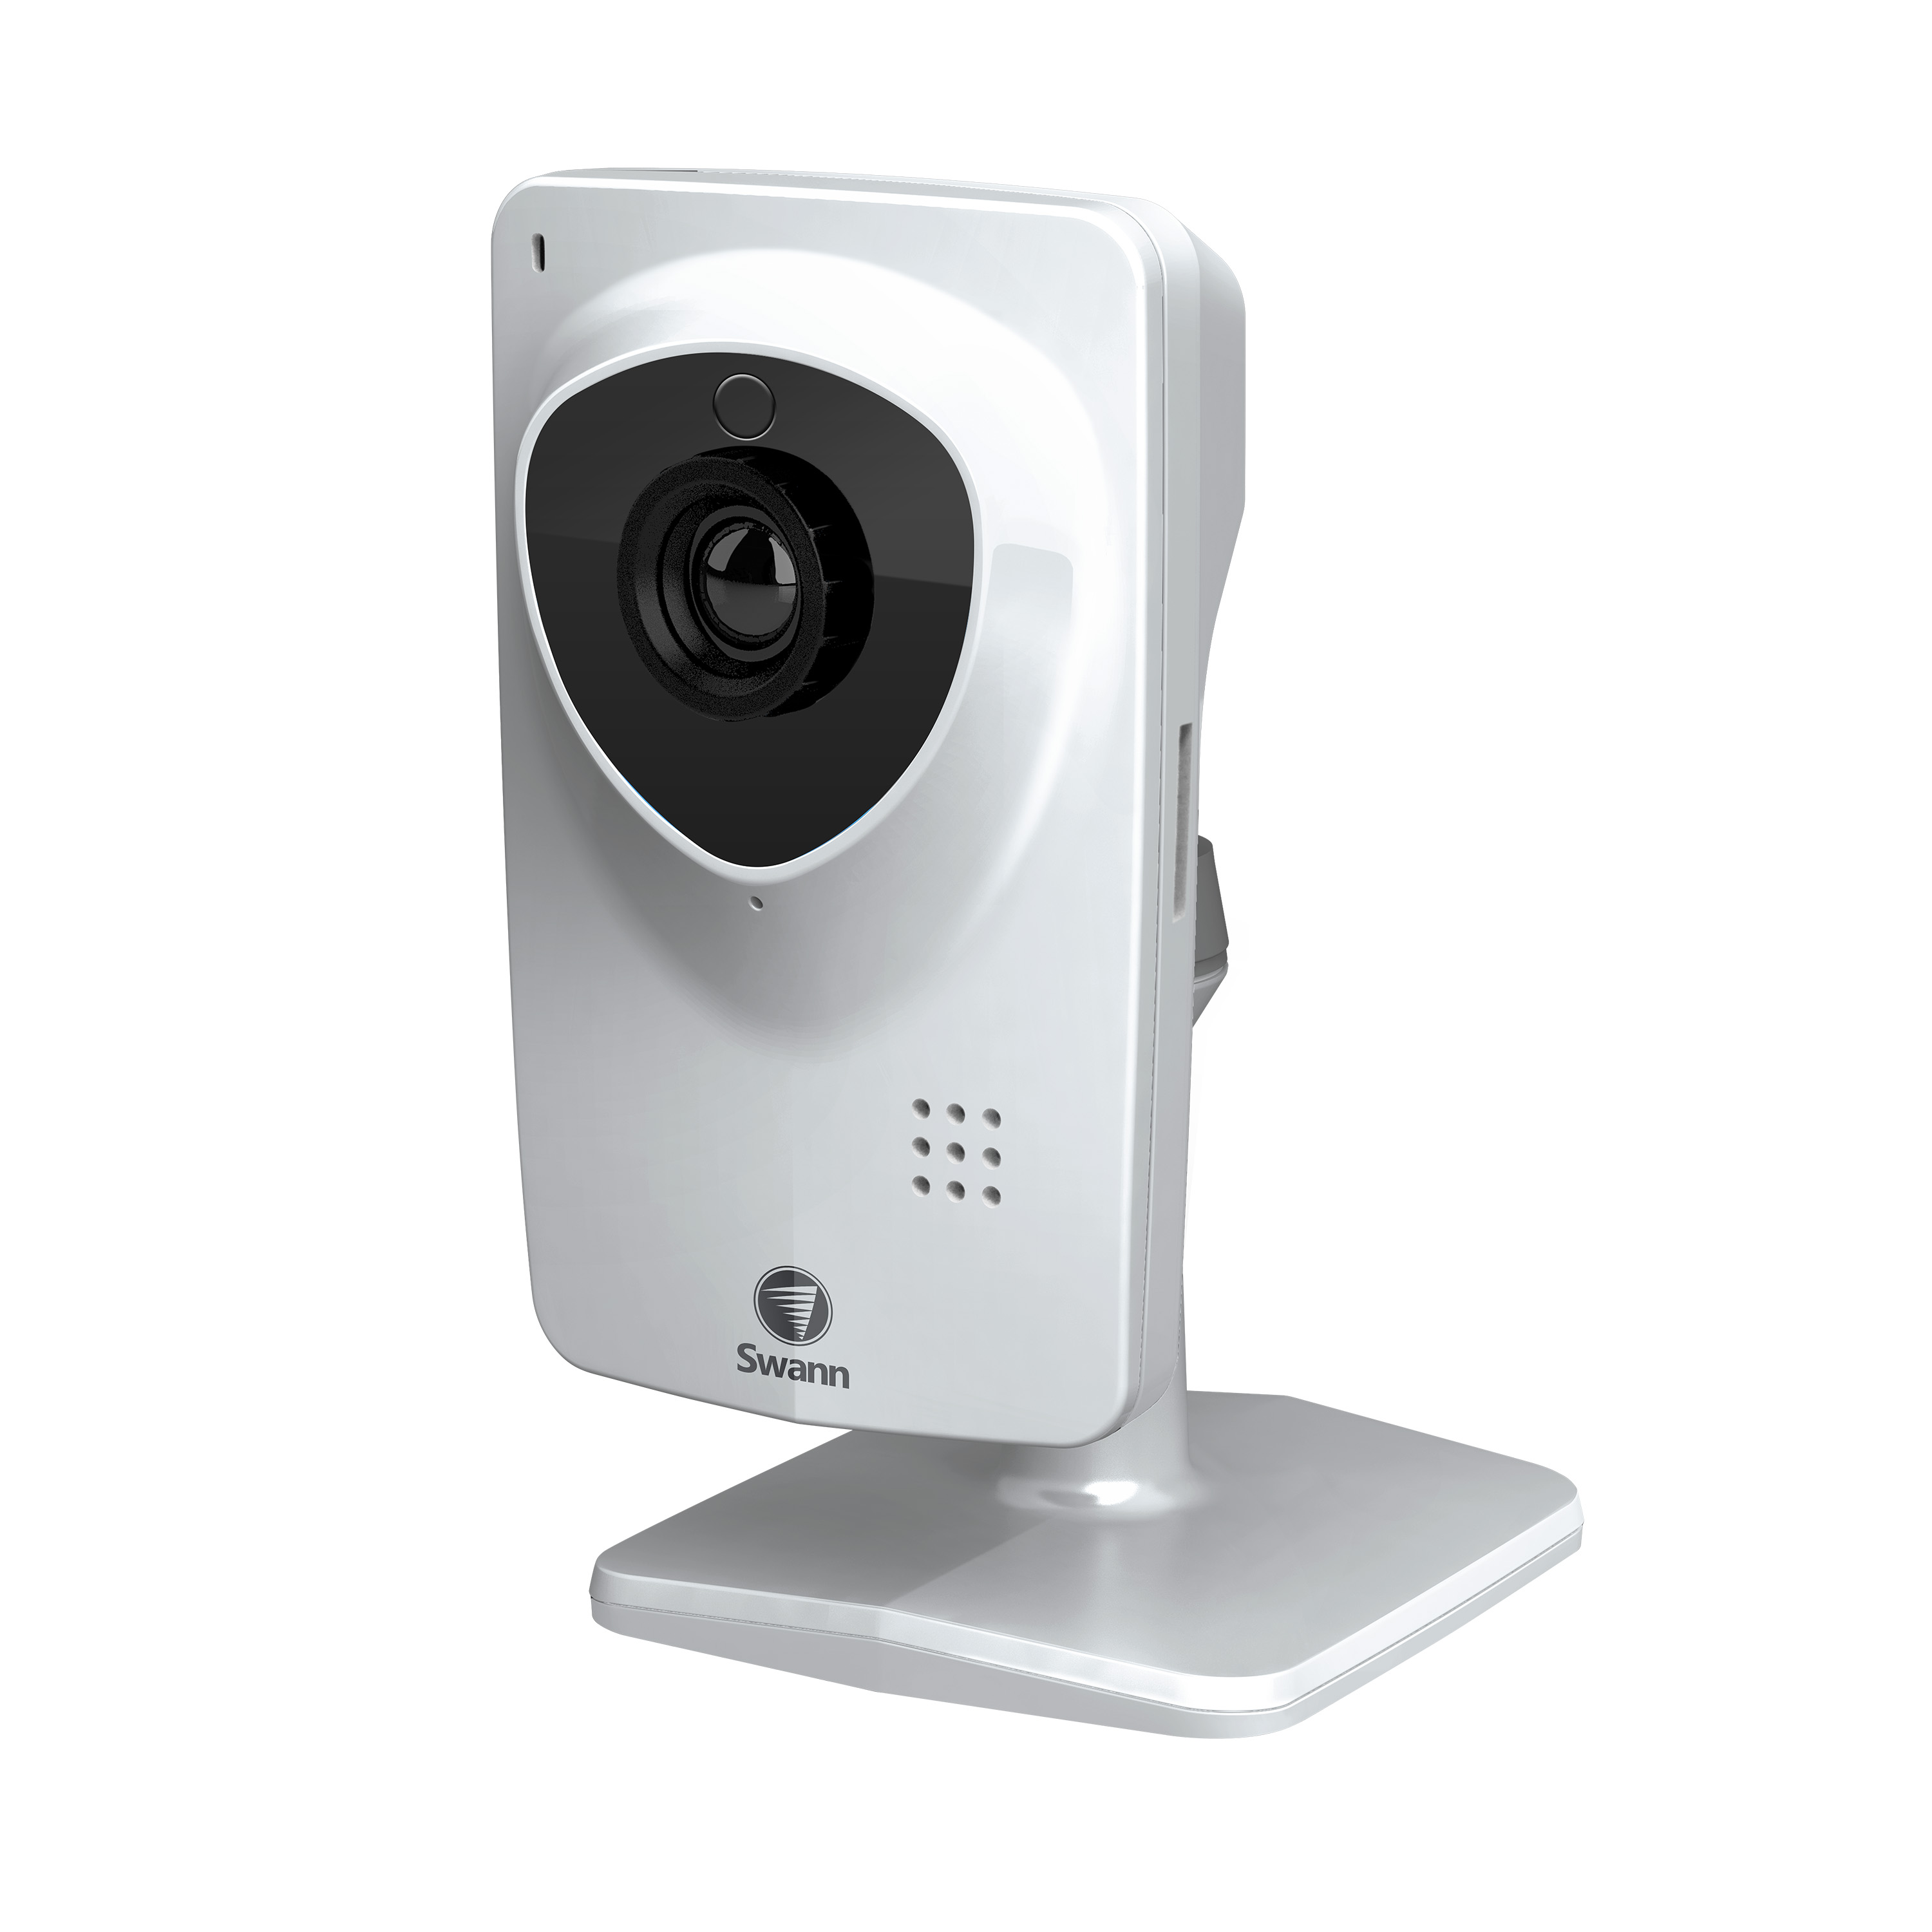 security camera without router cable edelbrock quicksilver carburetor diagram sw viewcam plug and play indoor wifi canada